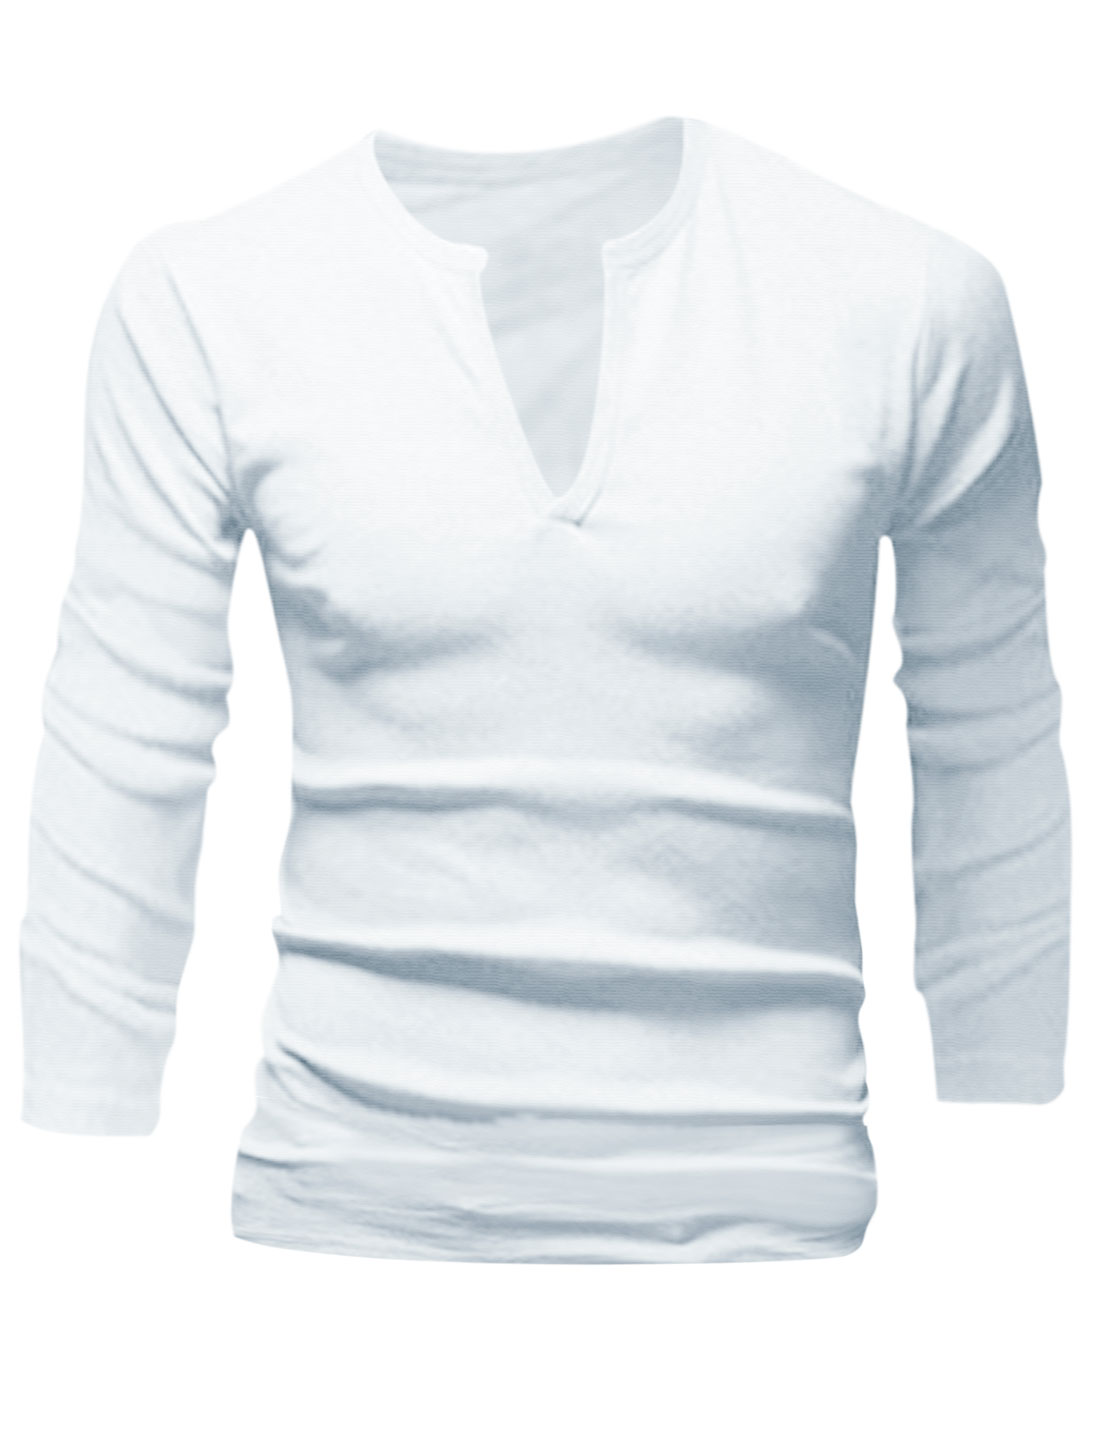 Slim Fit Split Neck Design Casual Shirt for Man White M